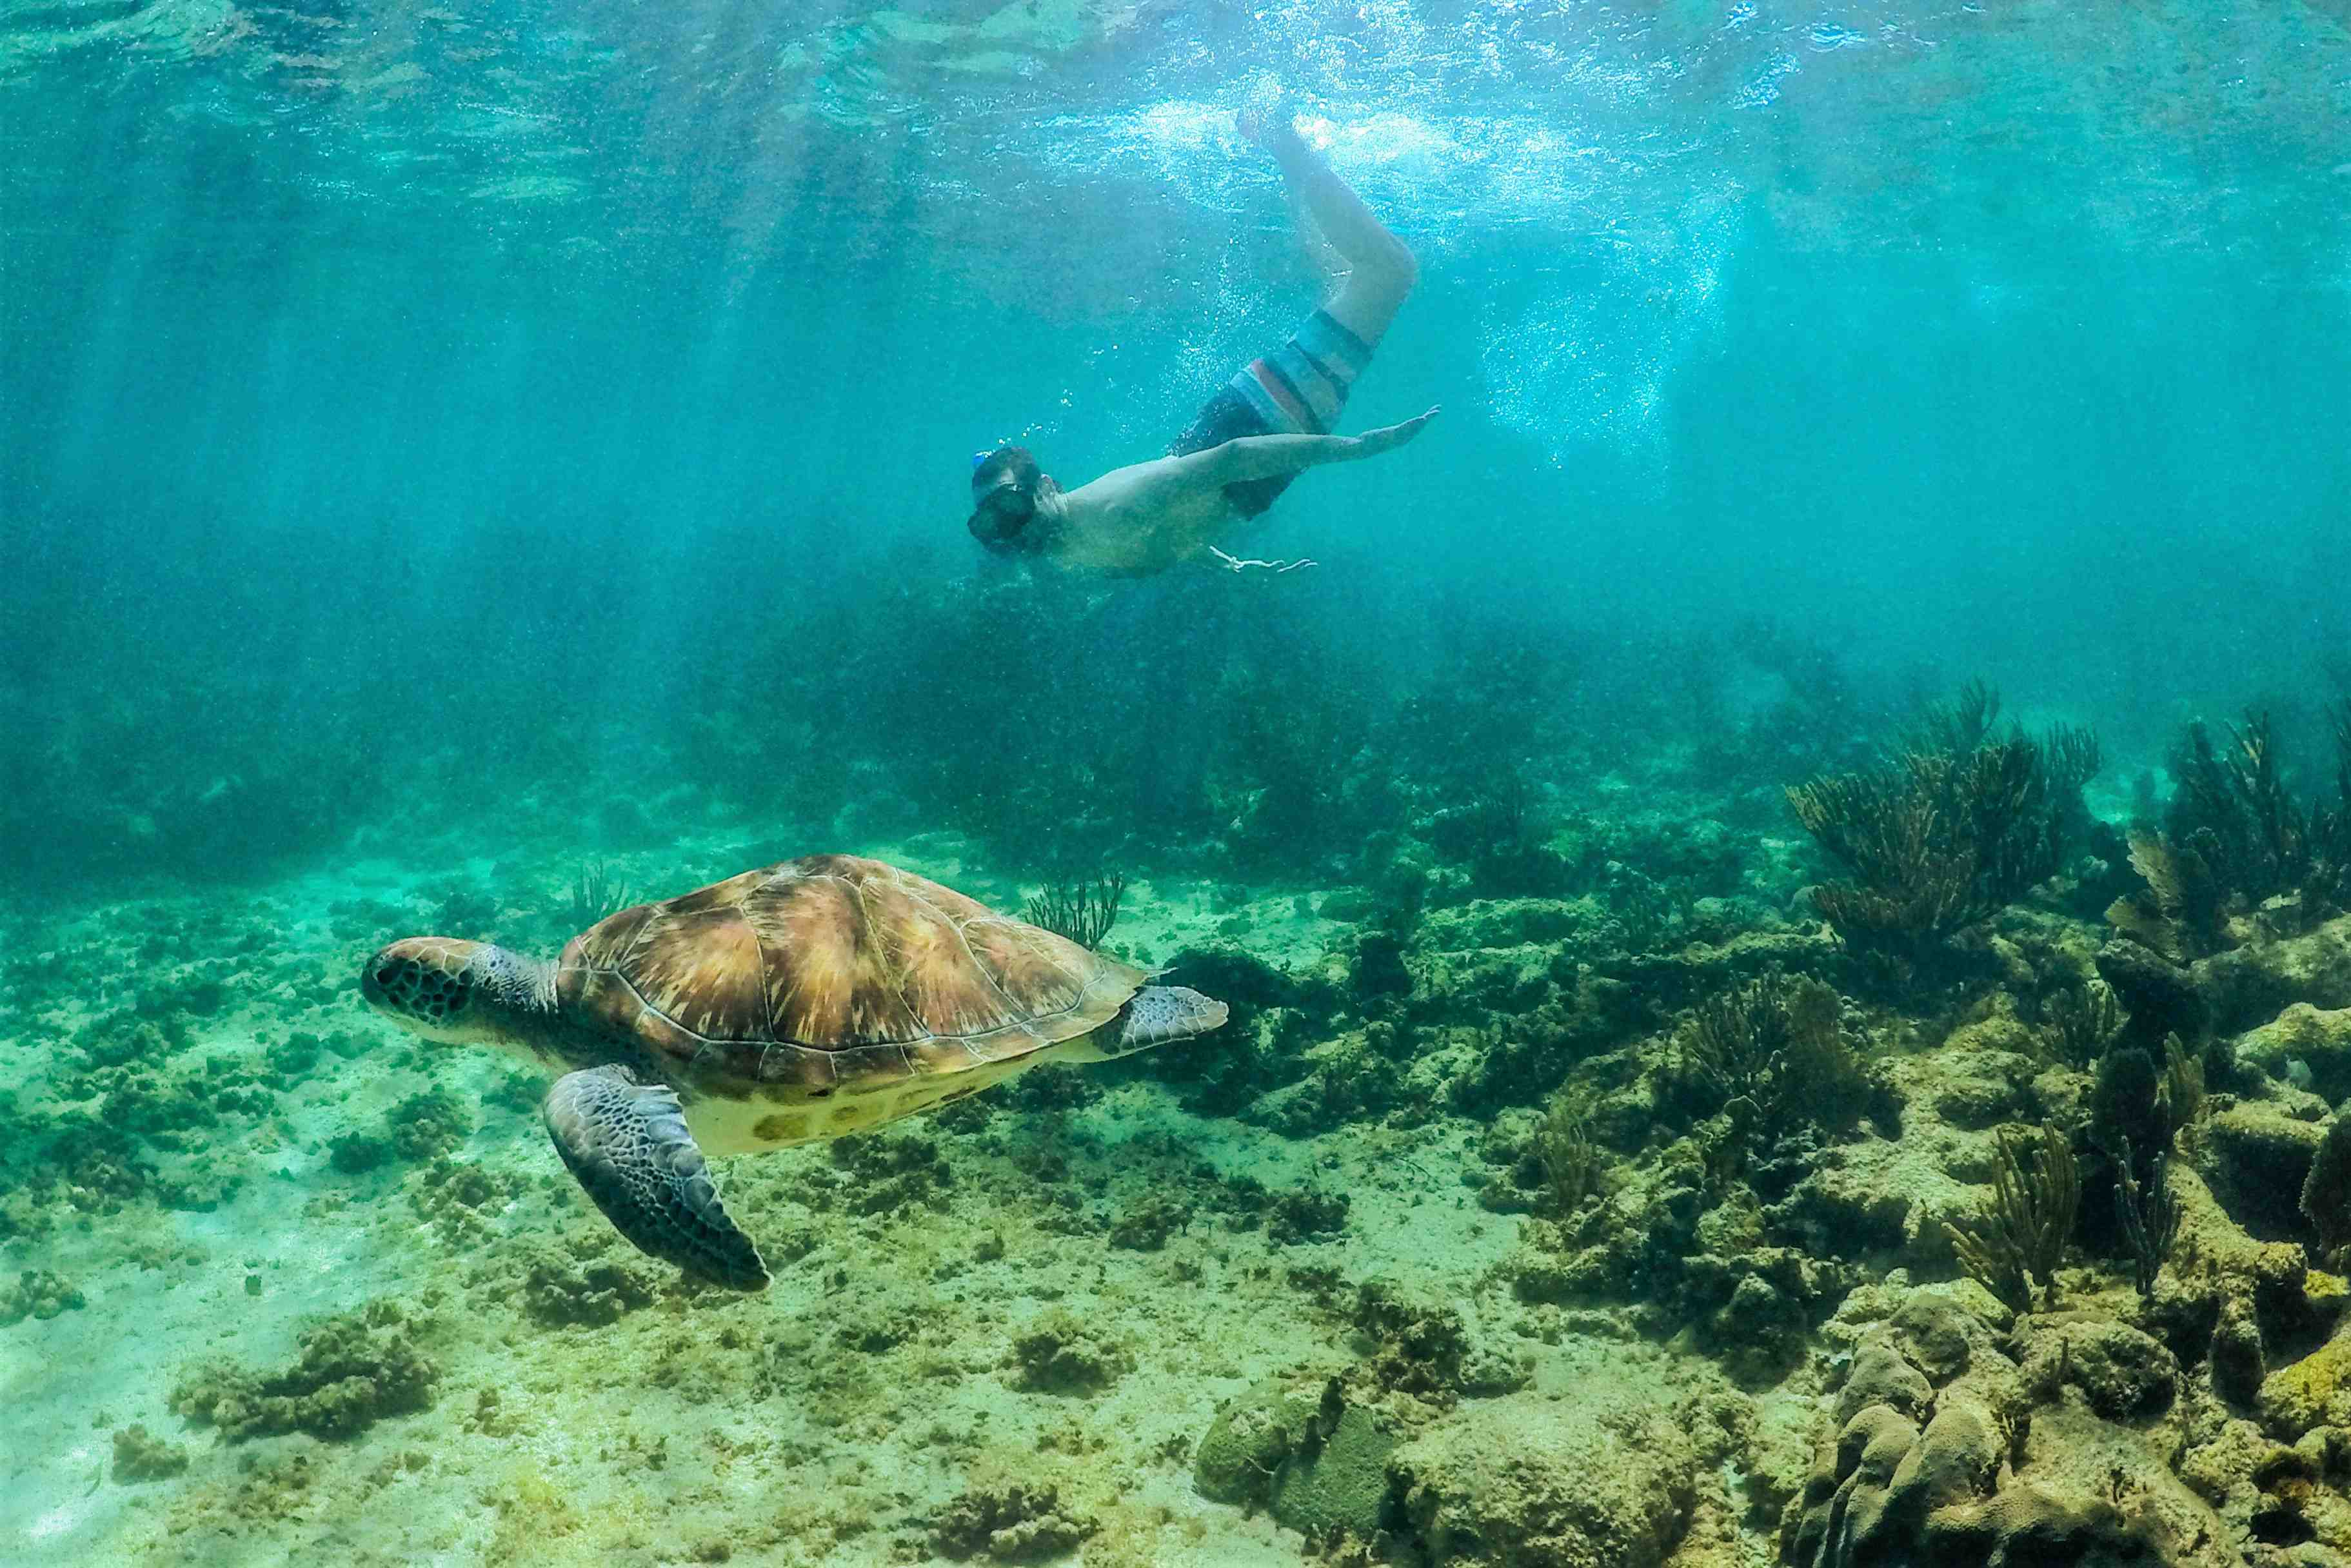 Coba And Turtle Adventure Tour - Last Minute Tours in Cancún and Riviera Maya